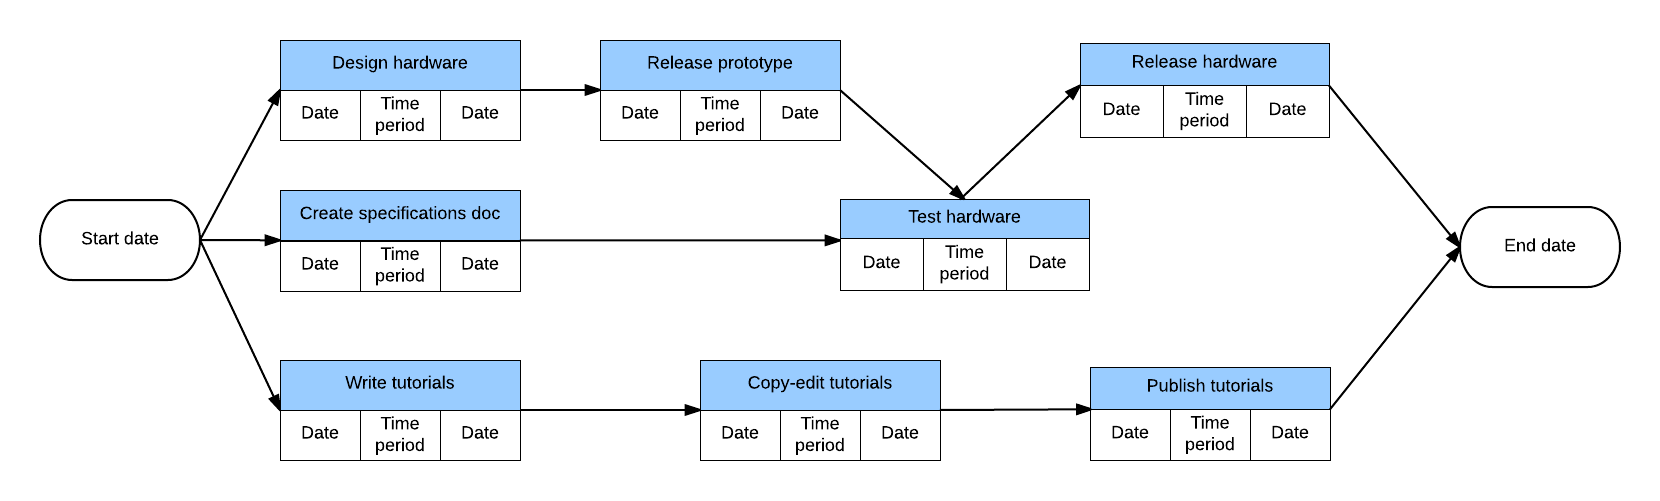 PERT chart example activity on node